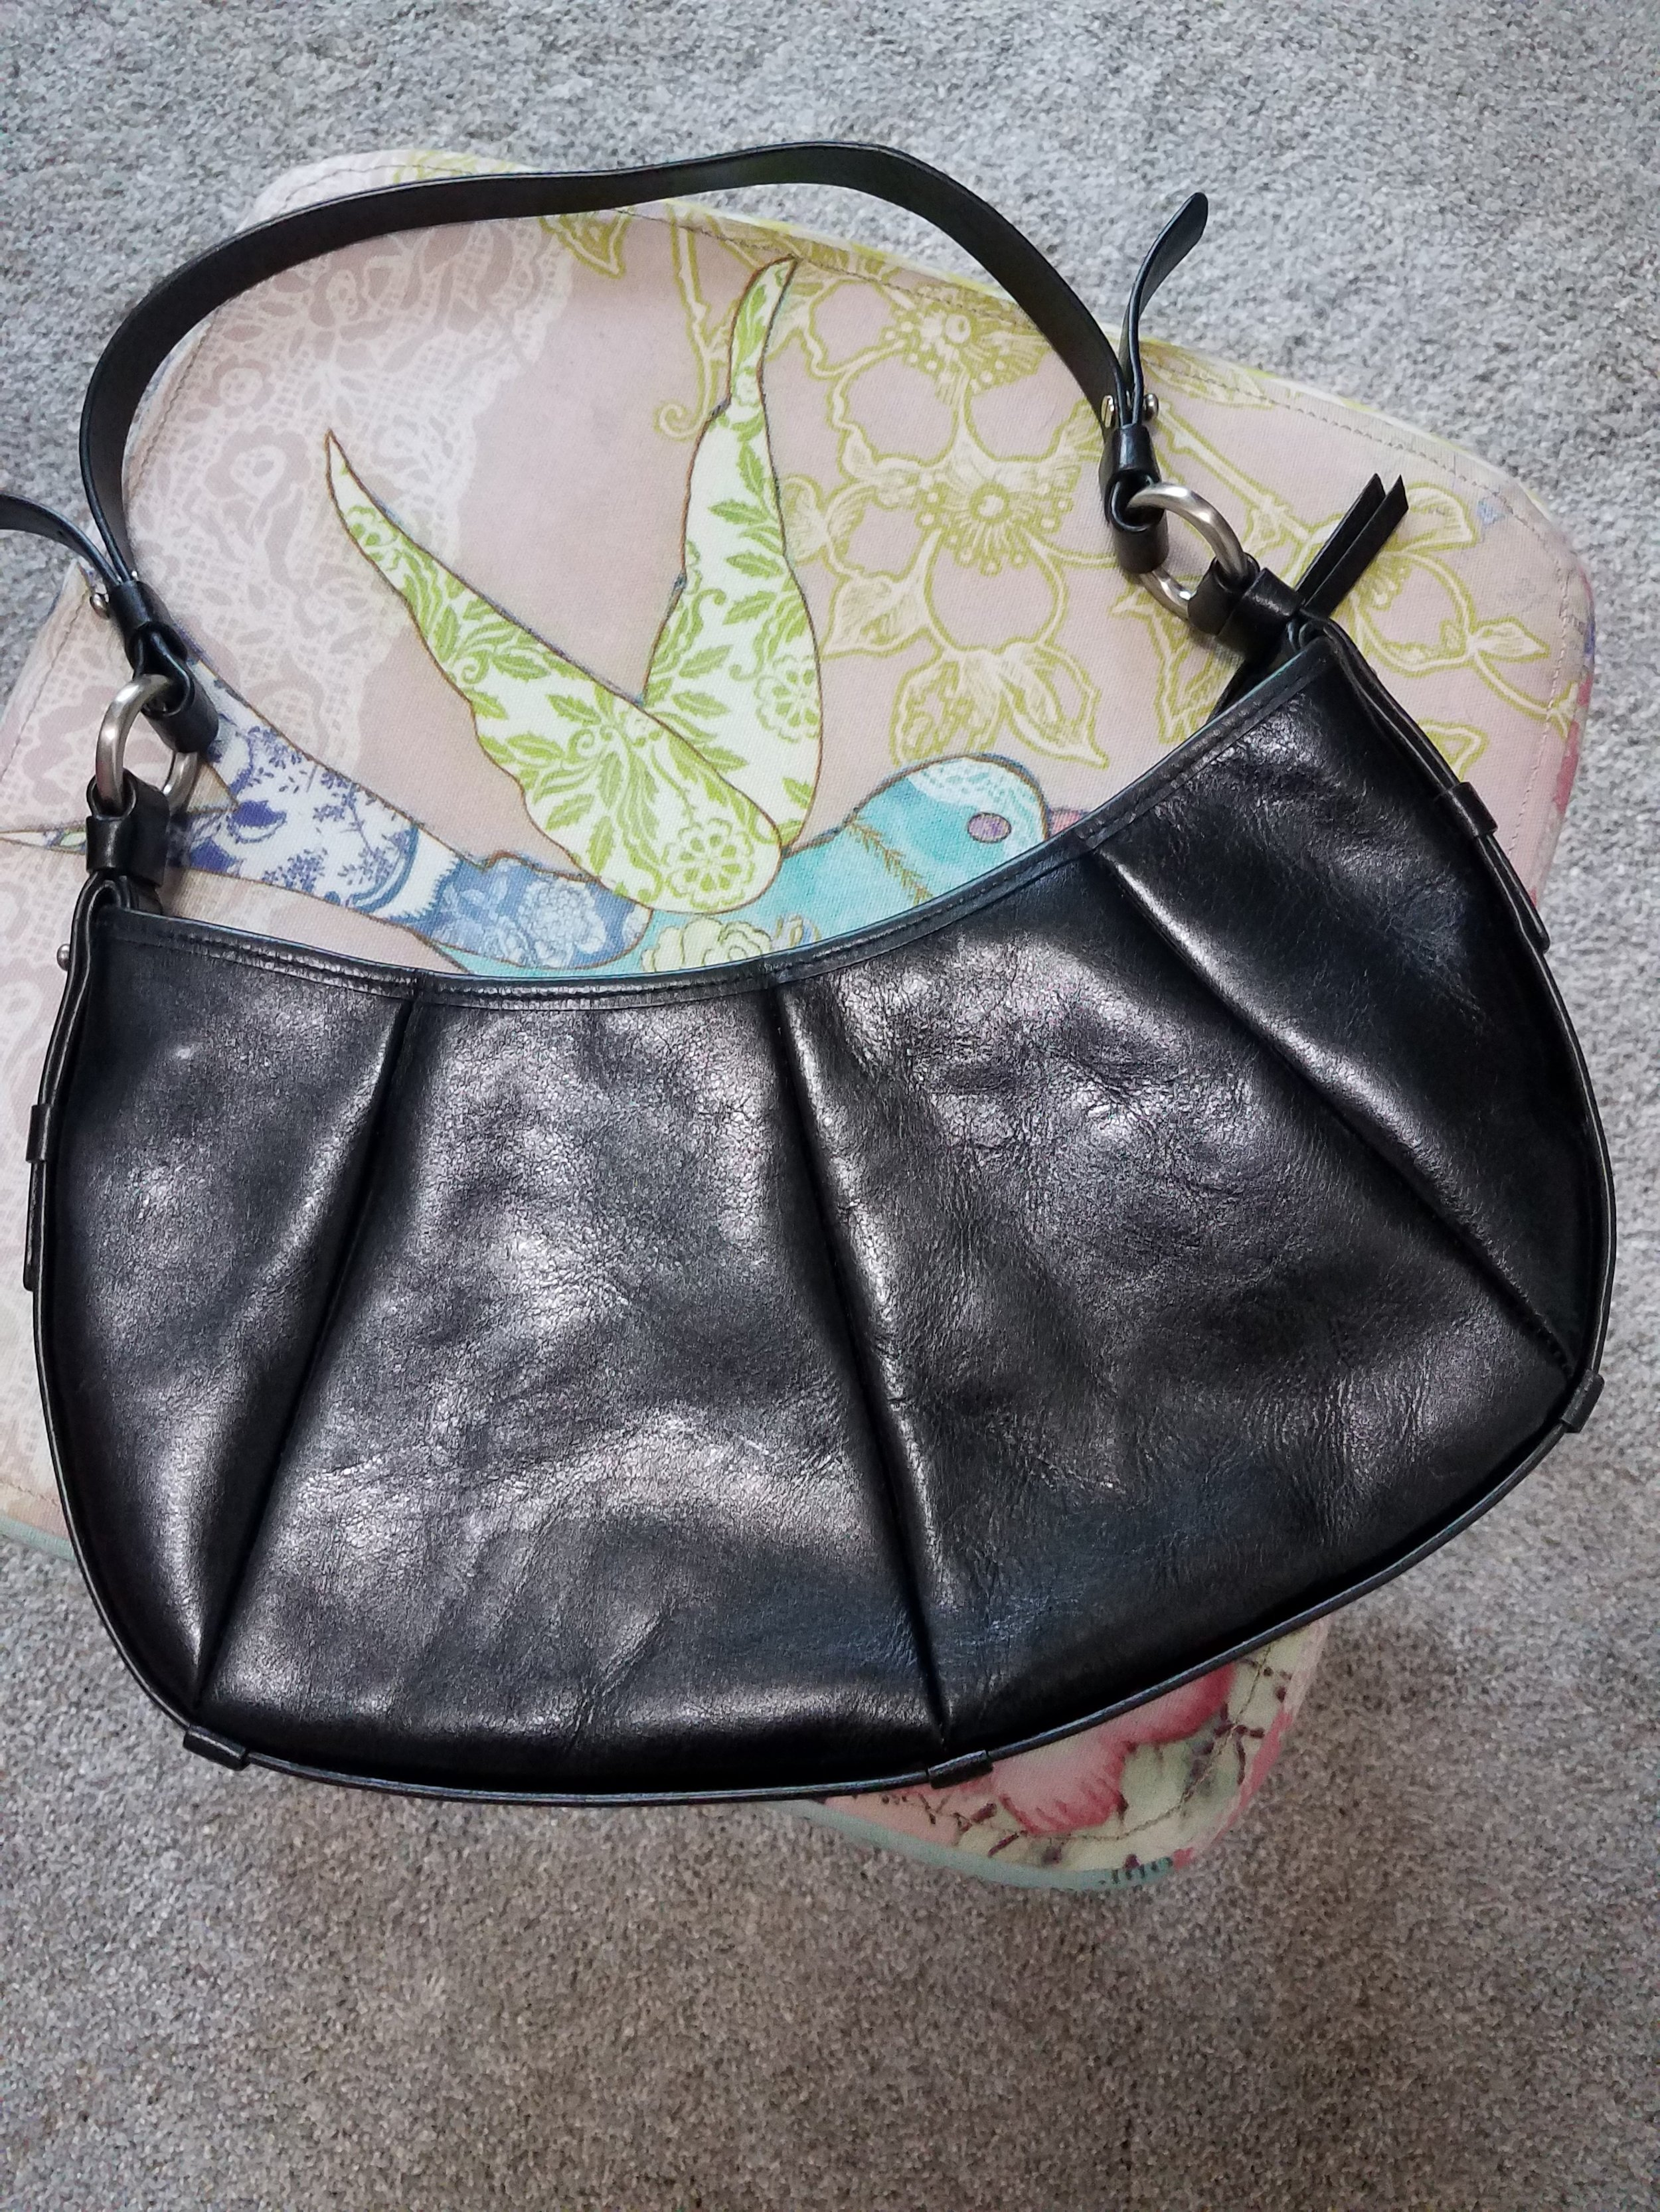 Franco Sarto mini - I purchased this bag so many years ago I don't even remember.  The shape of this bag is probably closest to the high-end designer bag I'm seeing in all the